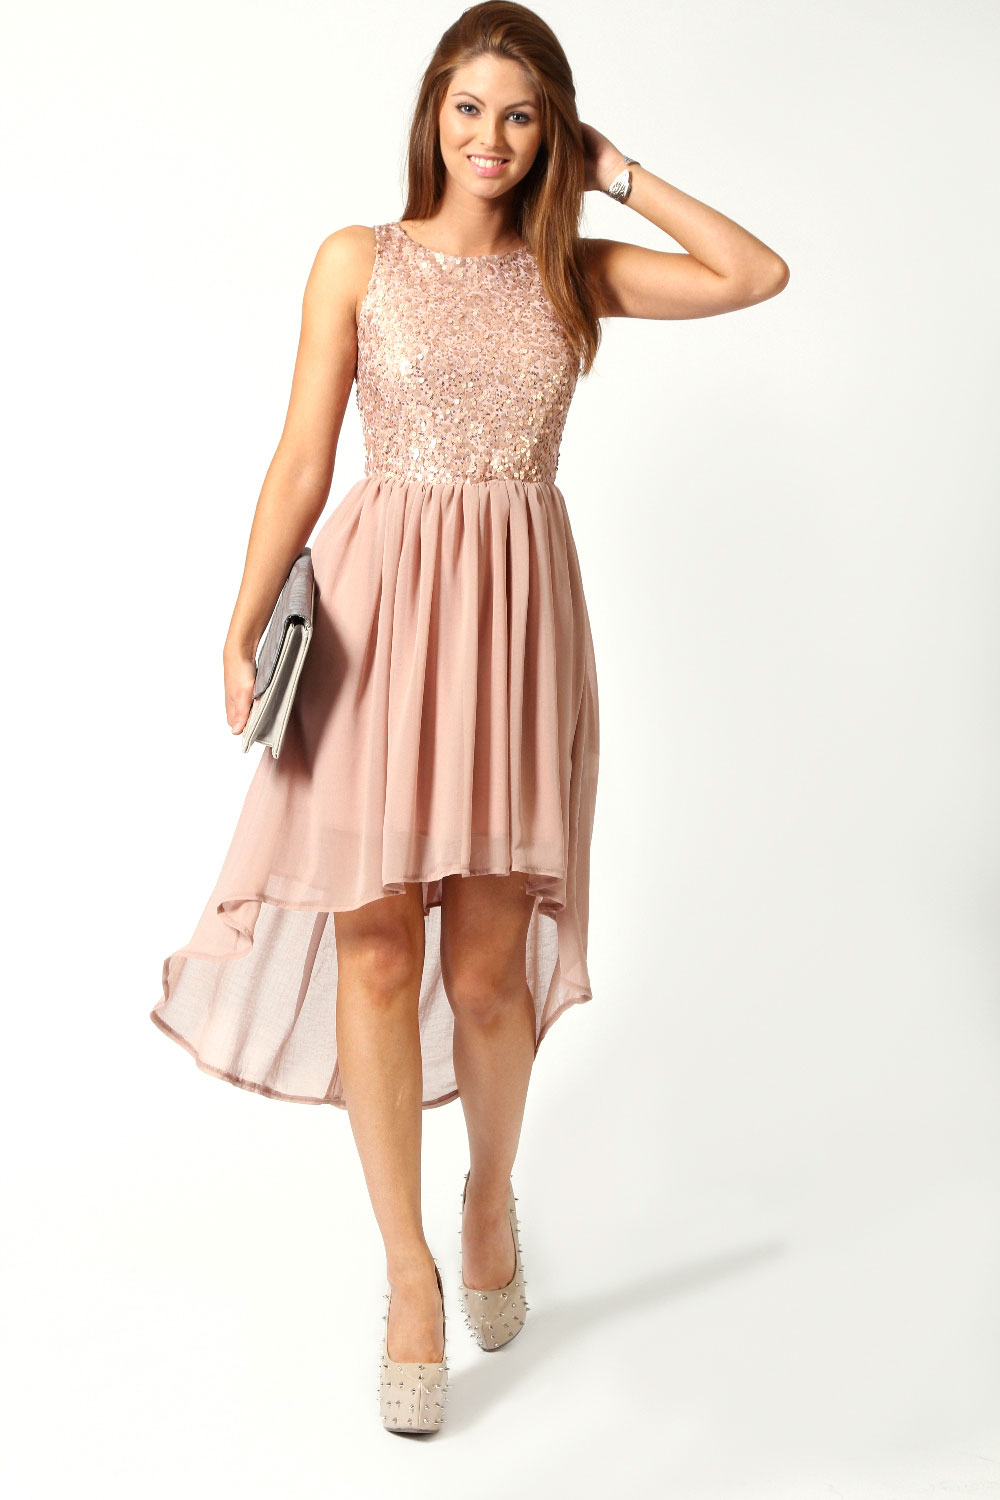 boohoo jess sleeveless sequin top open back chiffon dip hem dress in blush ebay. Black Bedroom Furniture Sets. Home Design Ideas